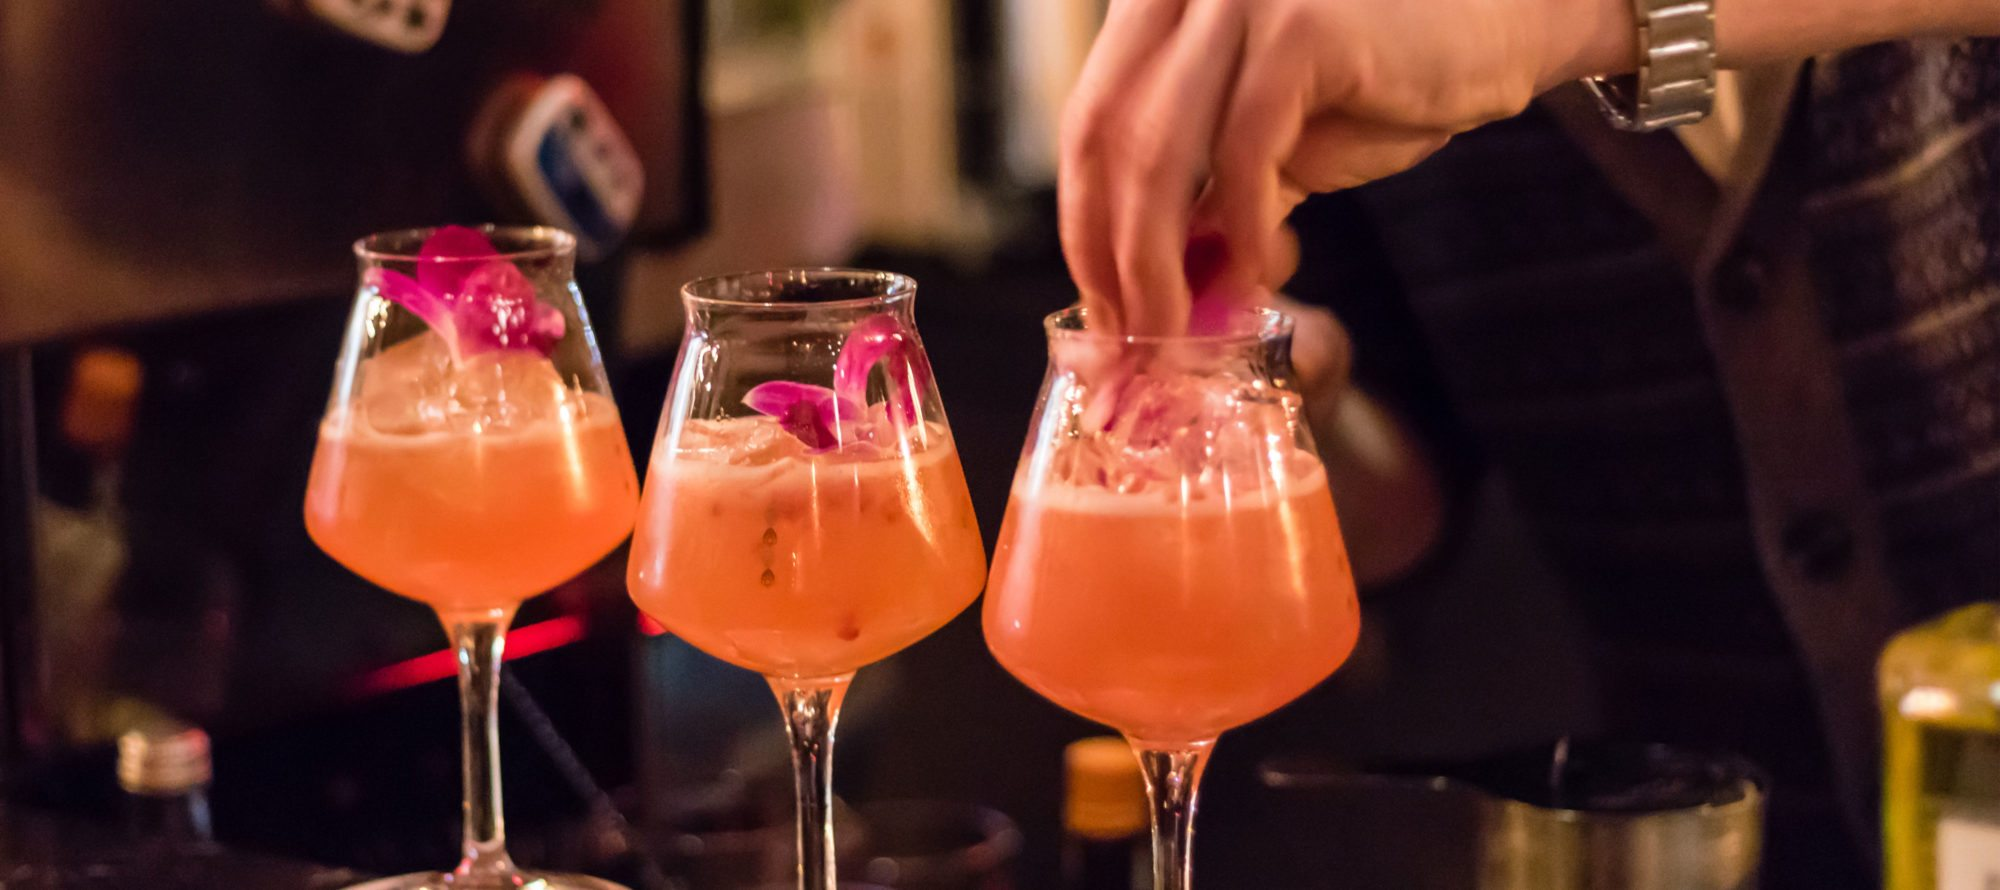 Made with Love cocktail competition attracts 40 bartenders to Common Eatery